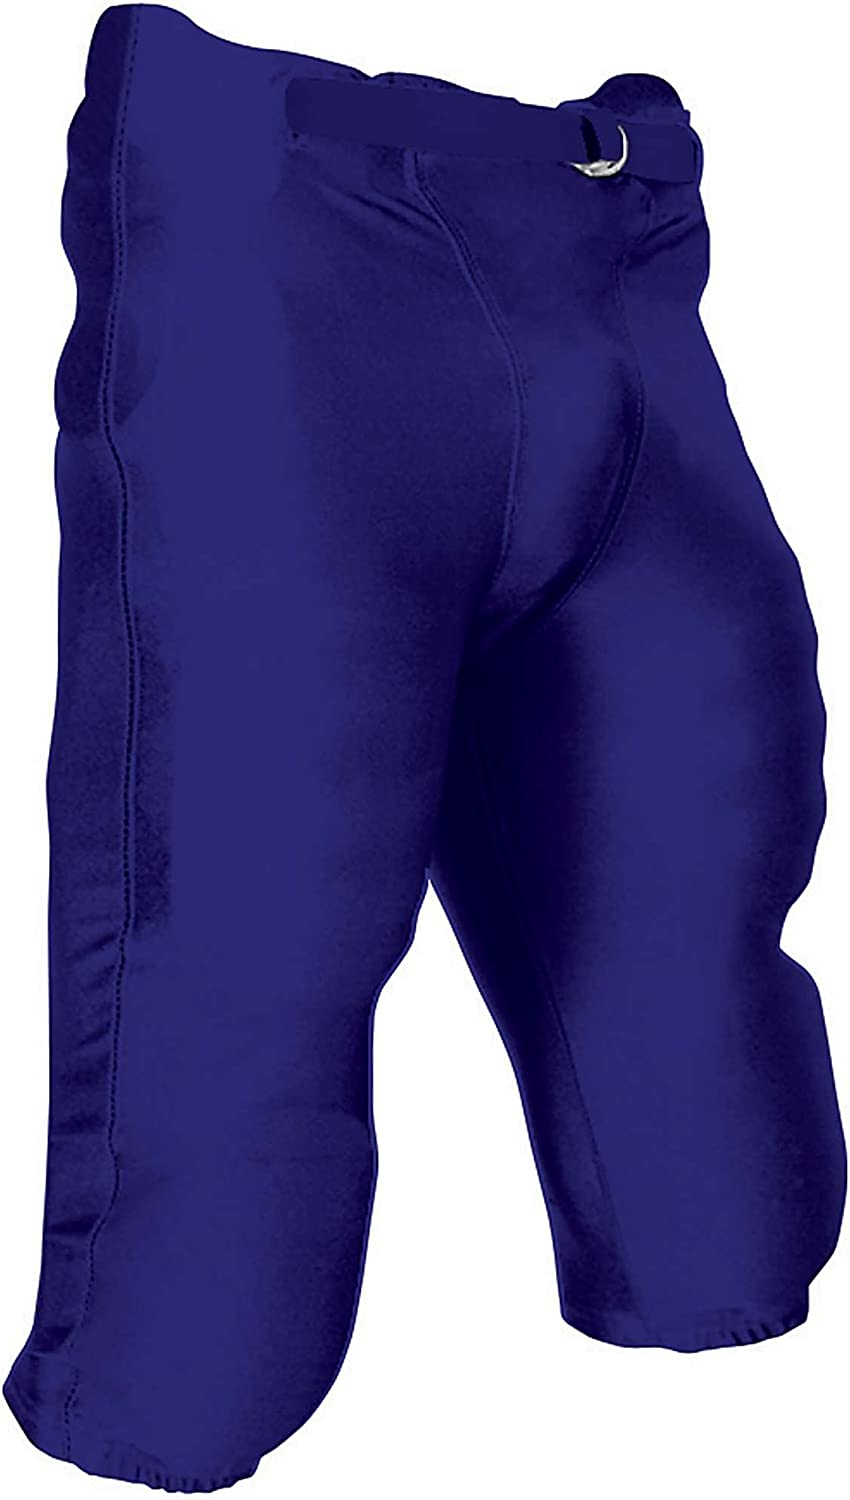 Champro fpyu9 Youth Dazzle統合Football Pant W/Built inパッドパープル  Medium